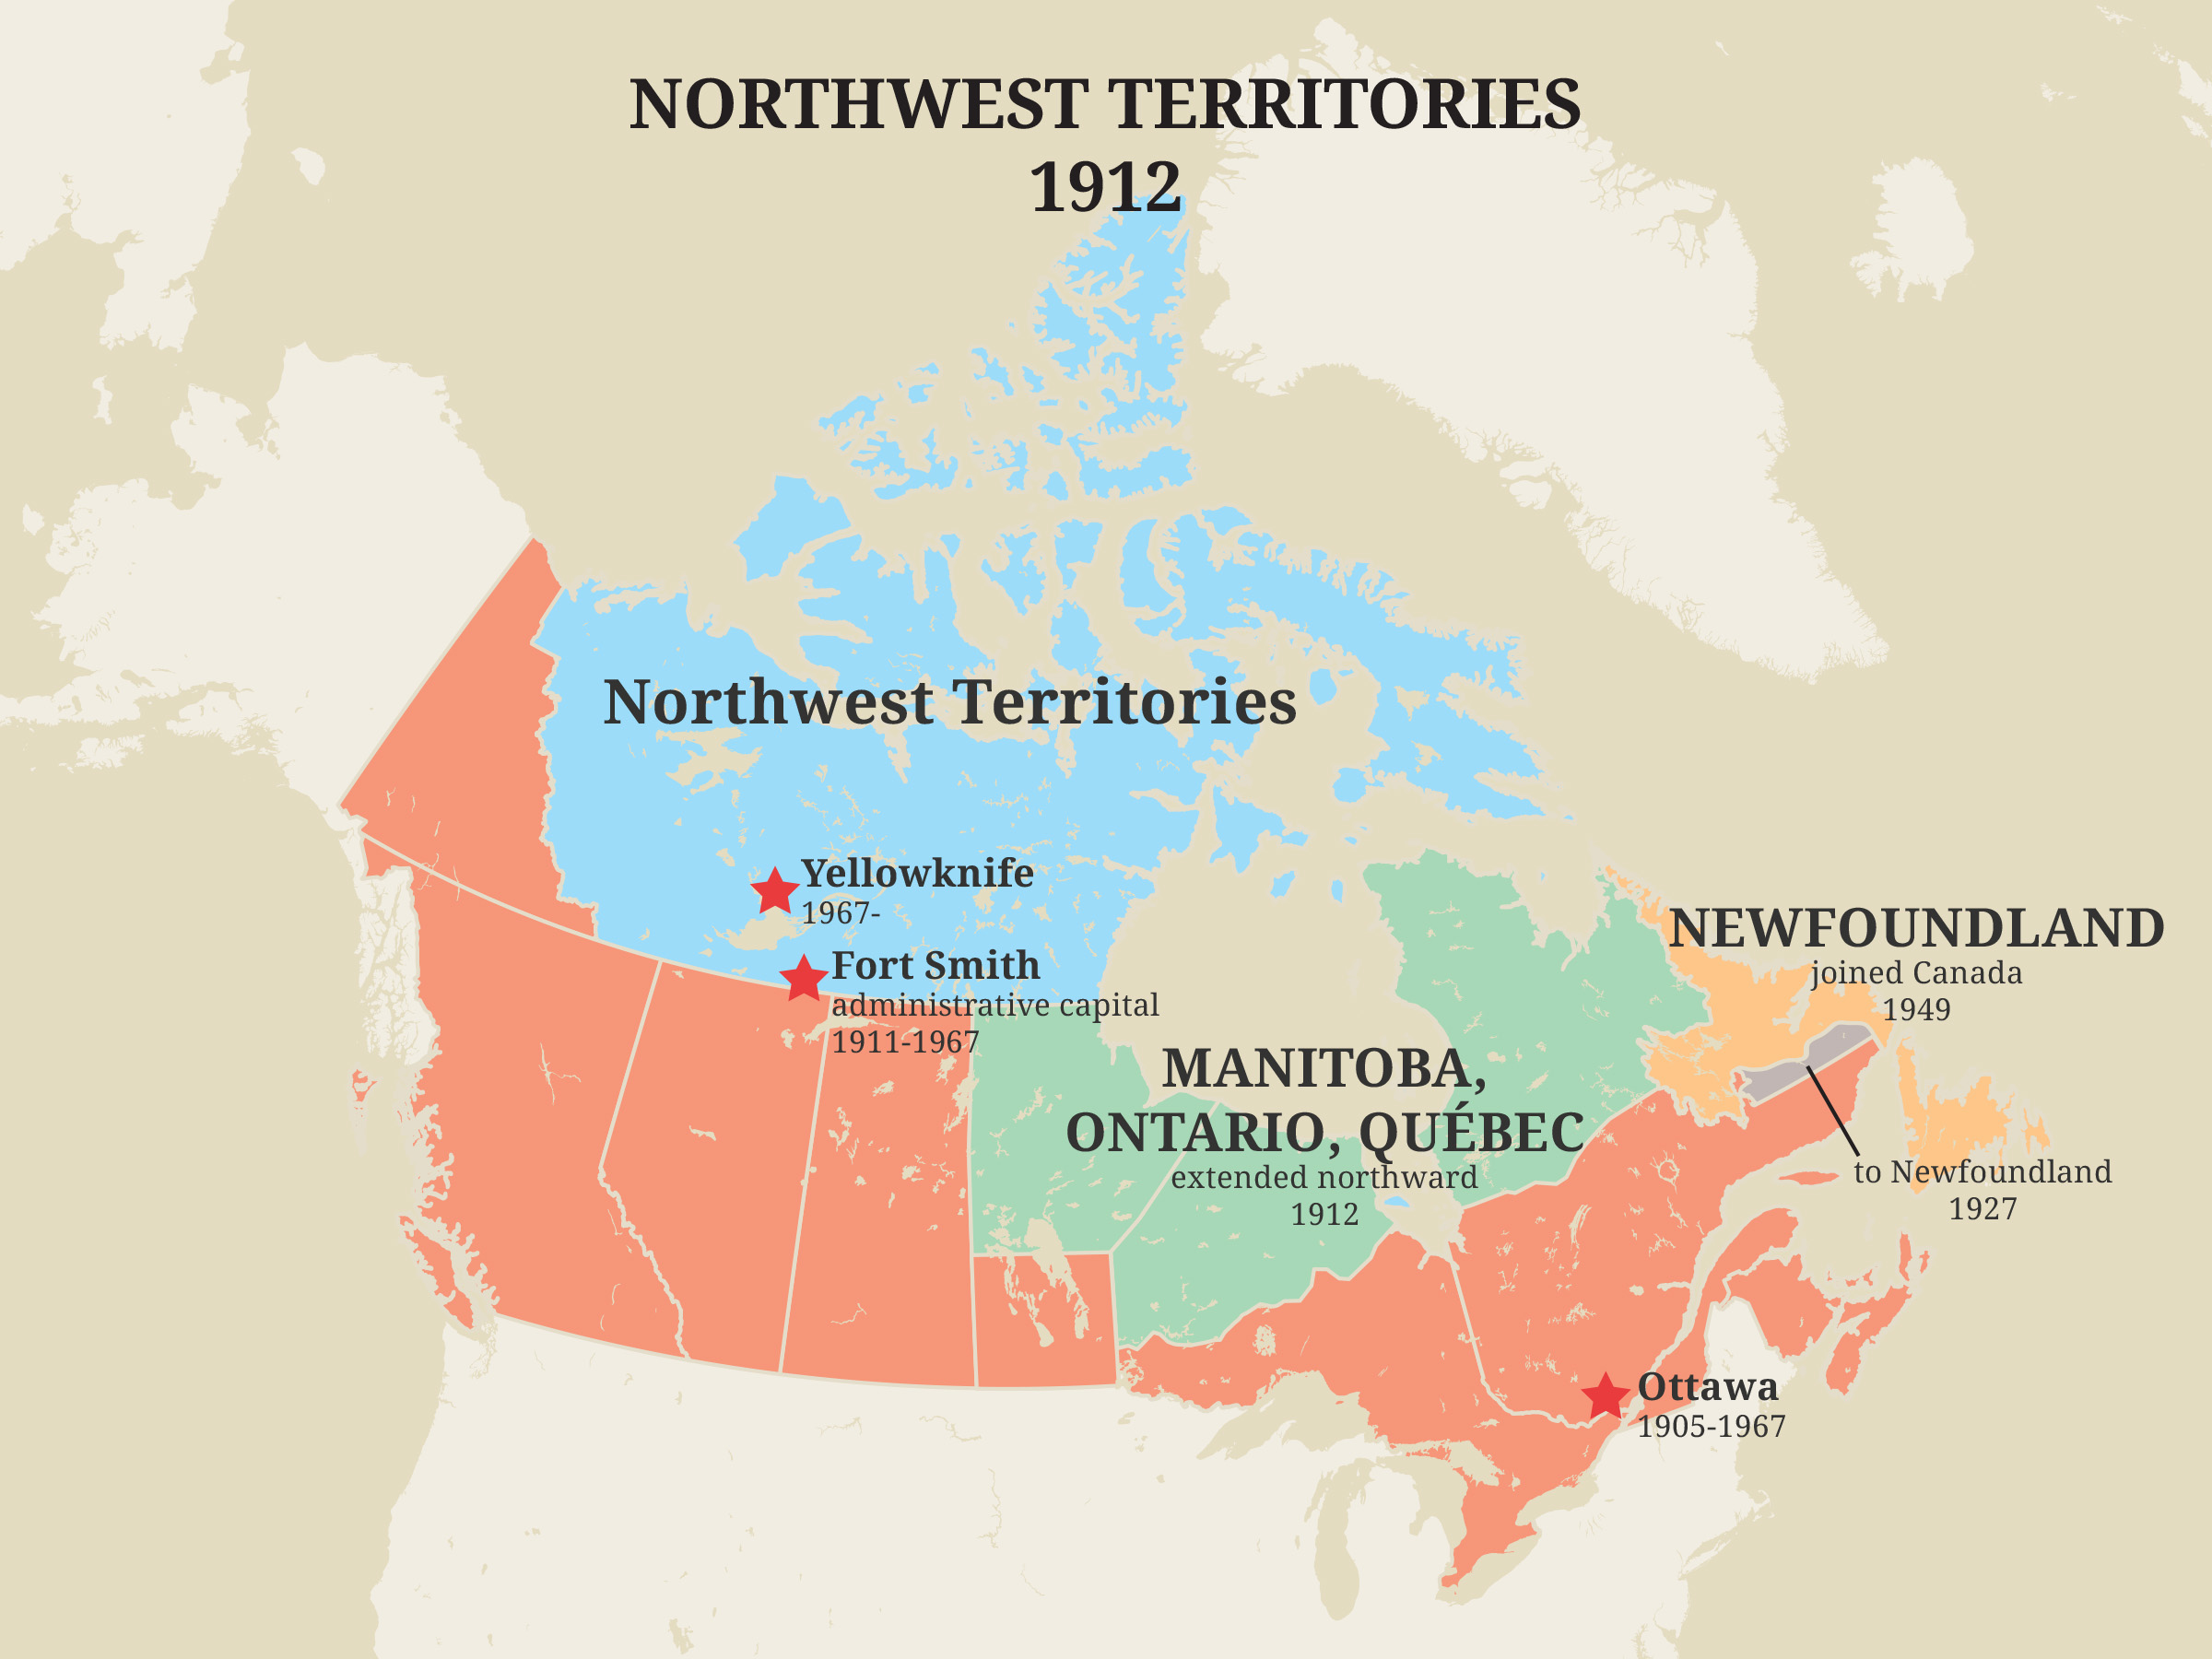 Northwest Territories, 1912